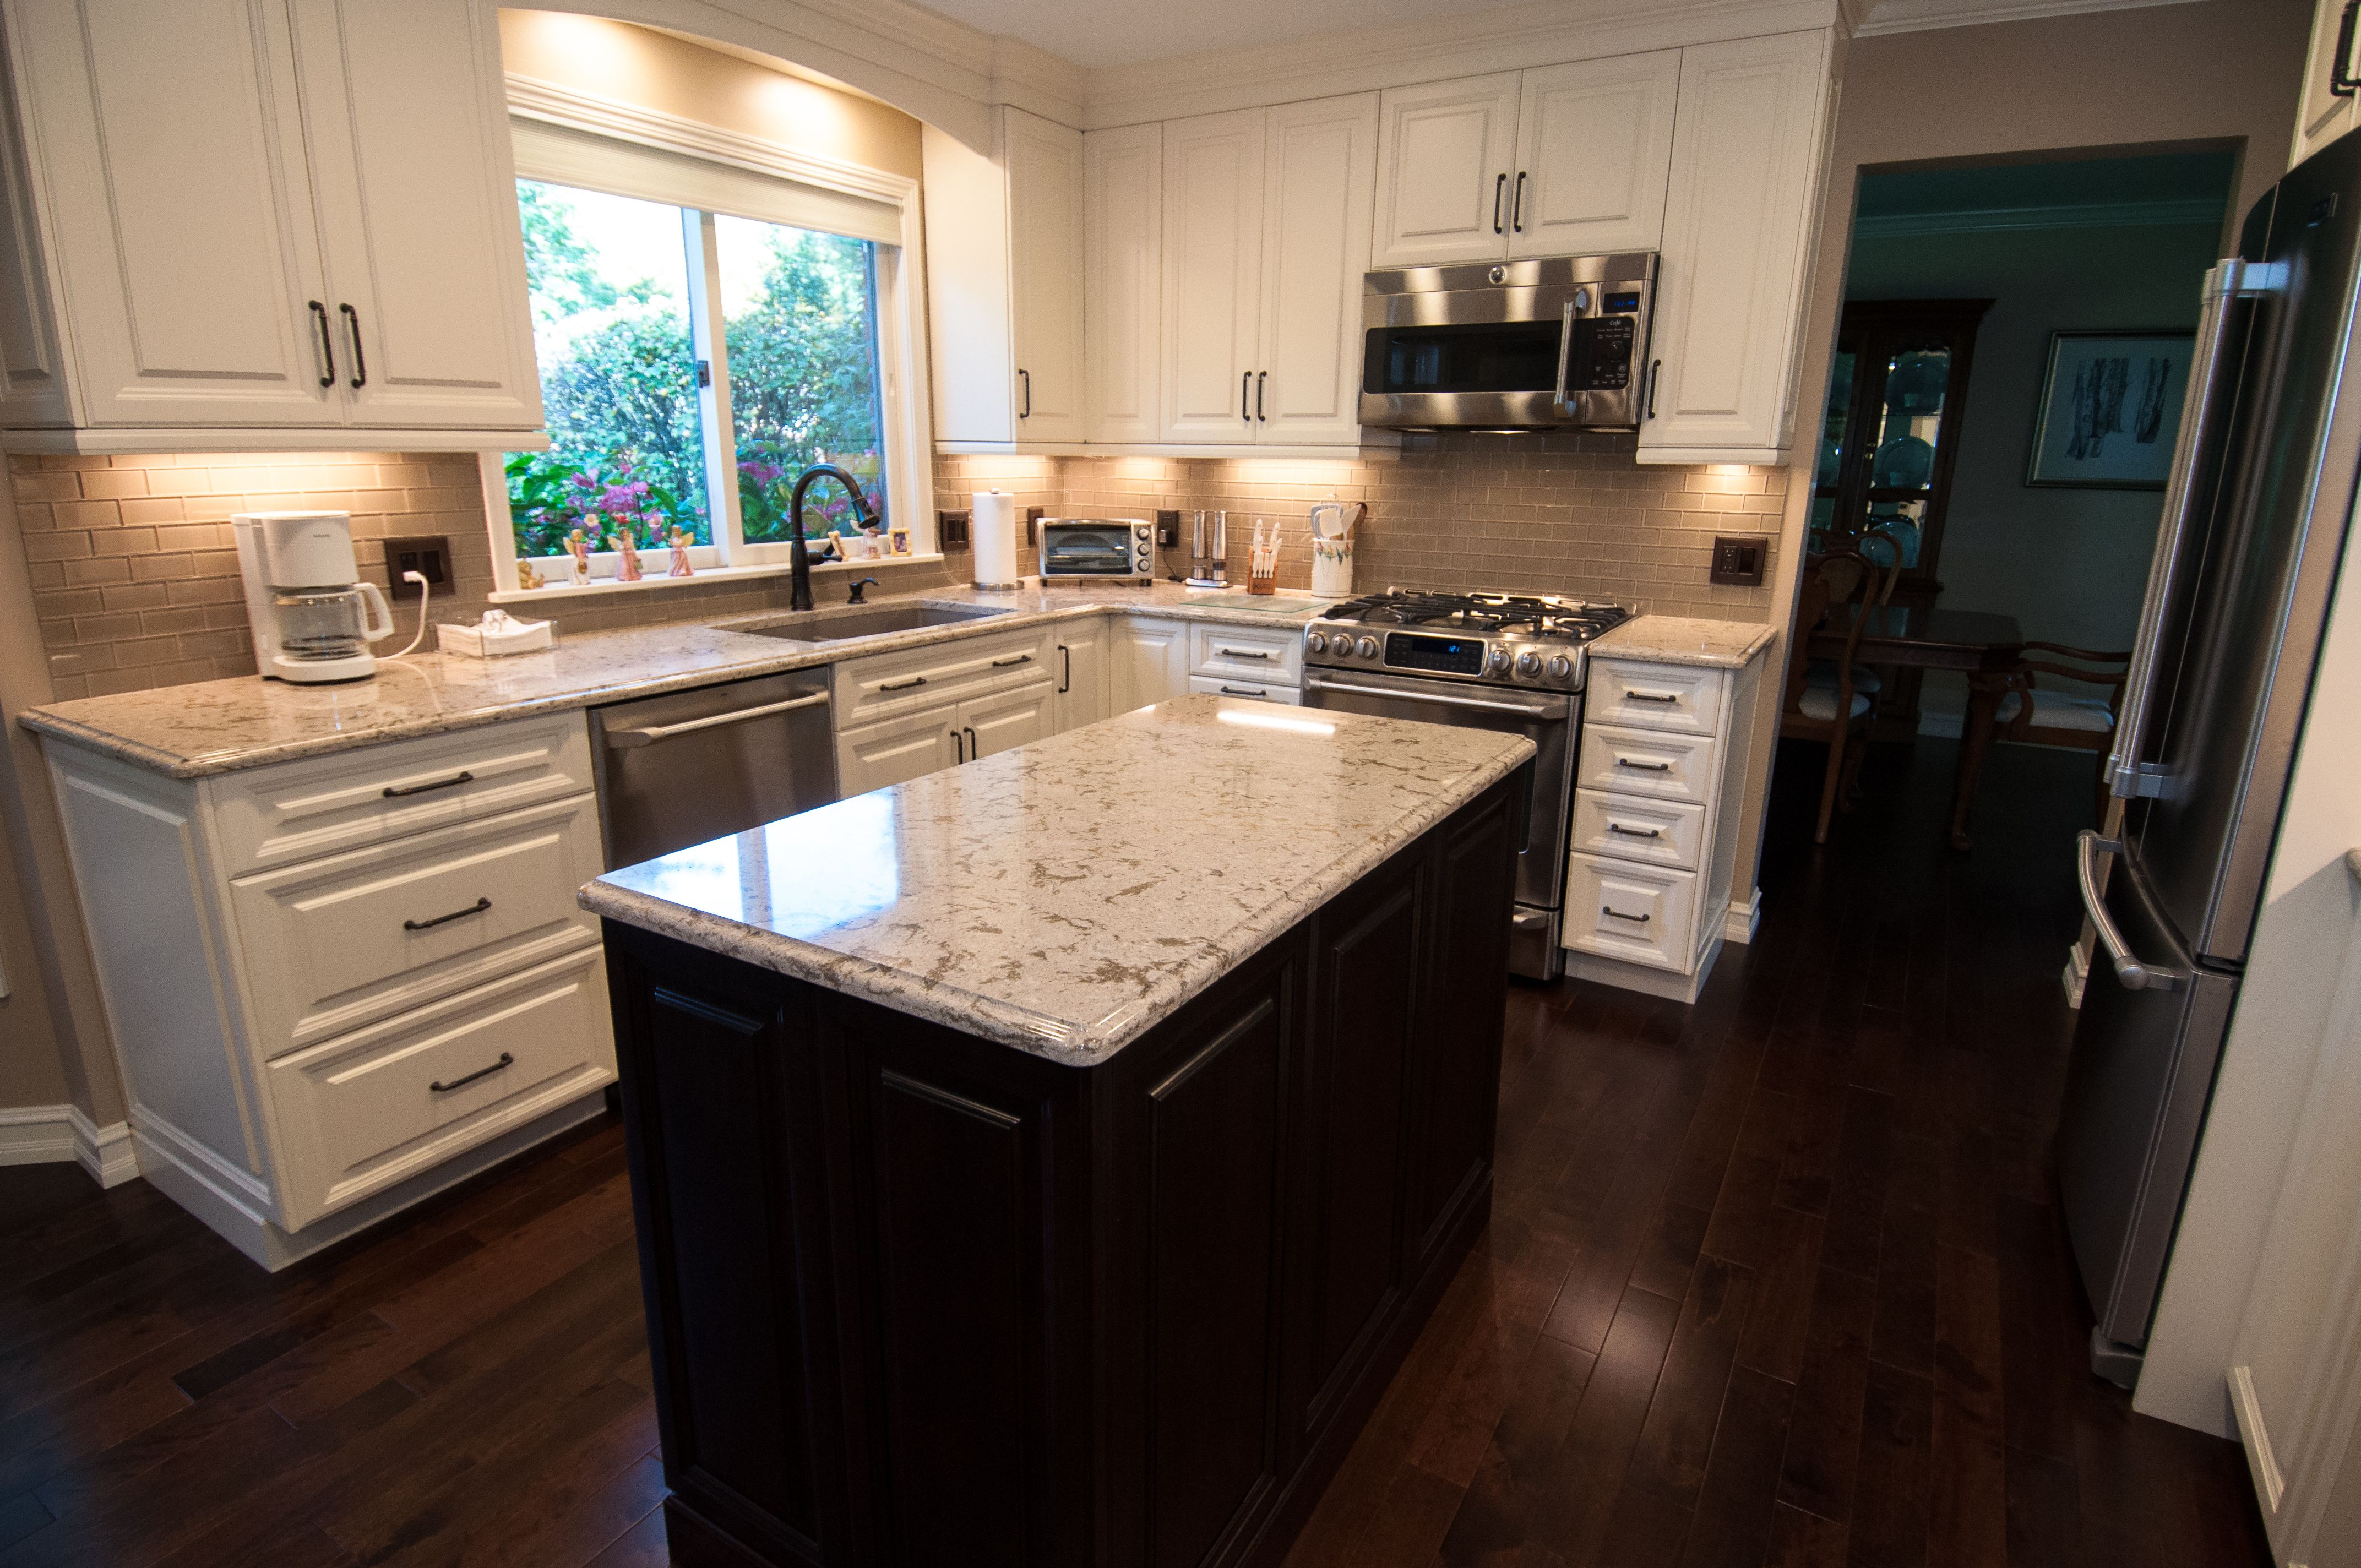 A Beautiful Kitchen From One Of Our Lafata Customers The Perimeter Cabinets Are Saratoga In Maple With An Kitchen Design Decor Kitchen Design Kitchen Remodel